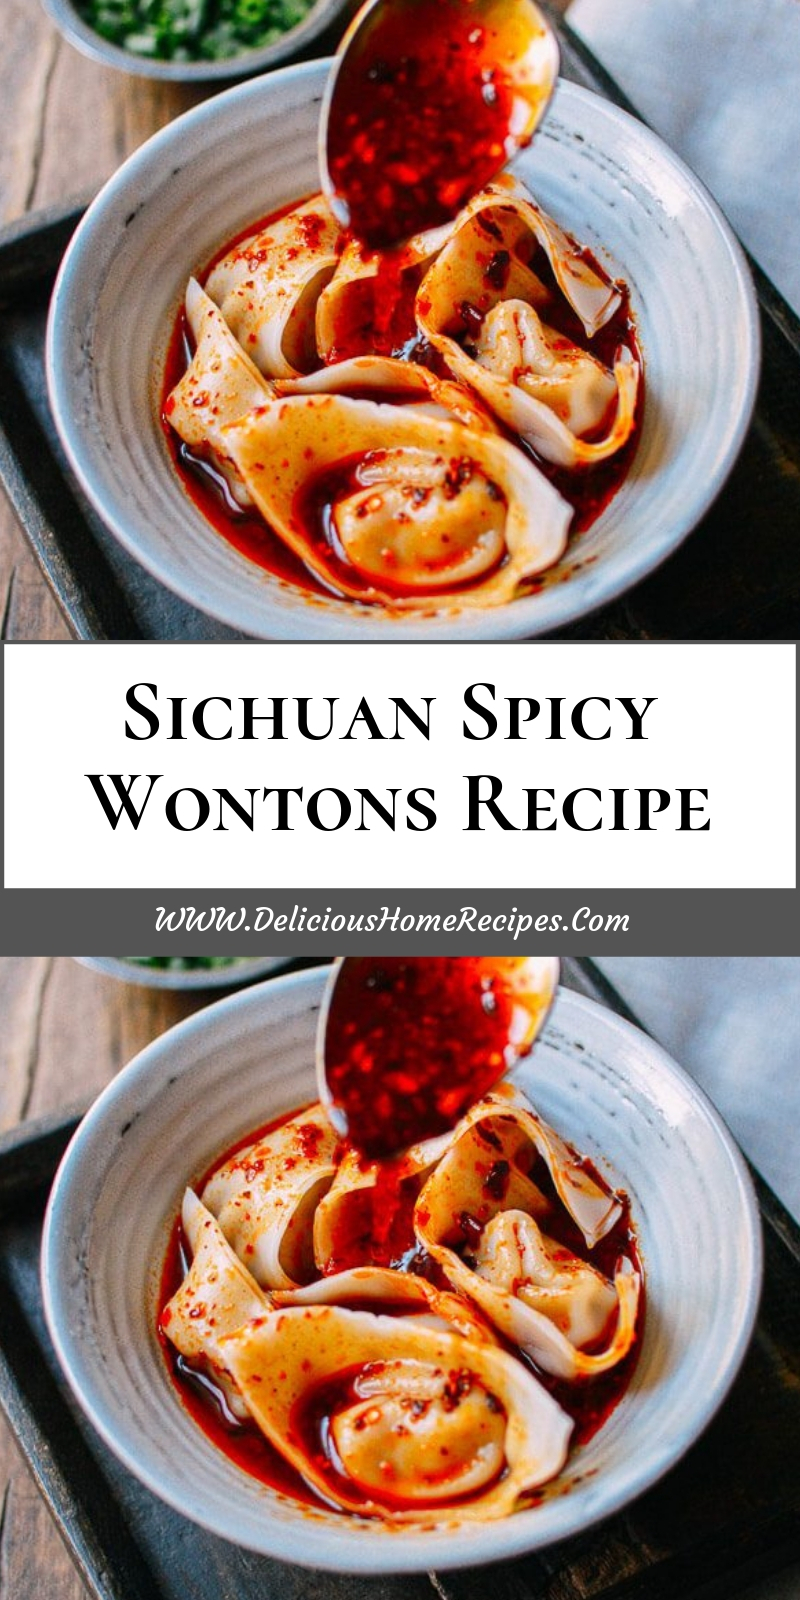 Sichuan Spicy Wontons Recipe